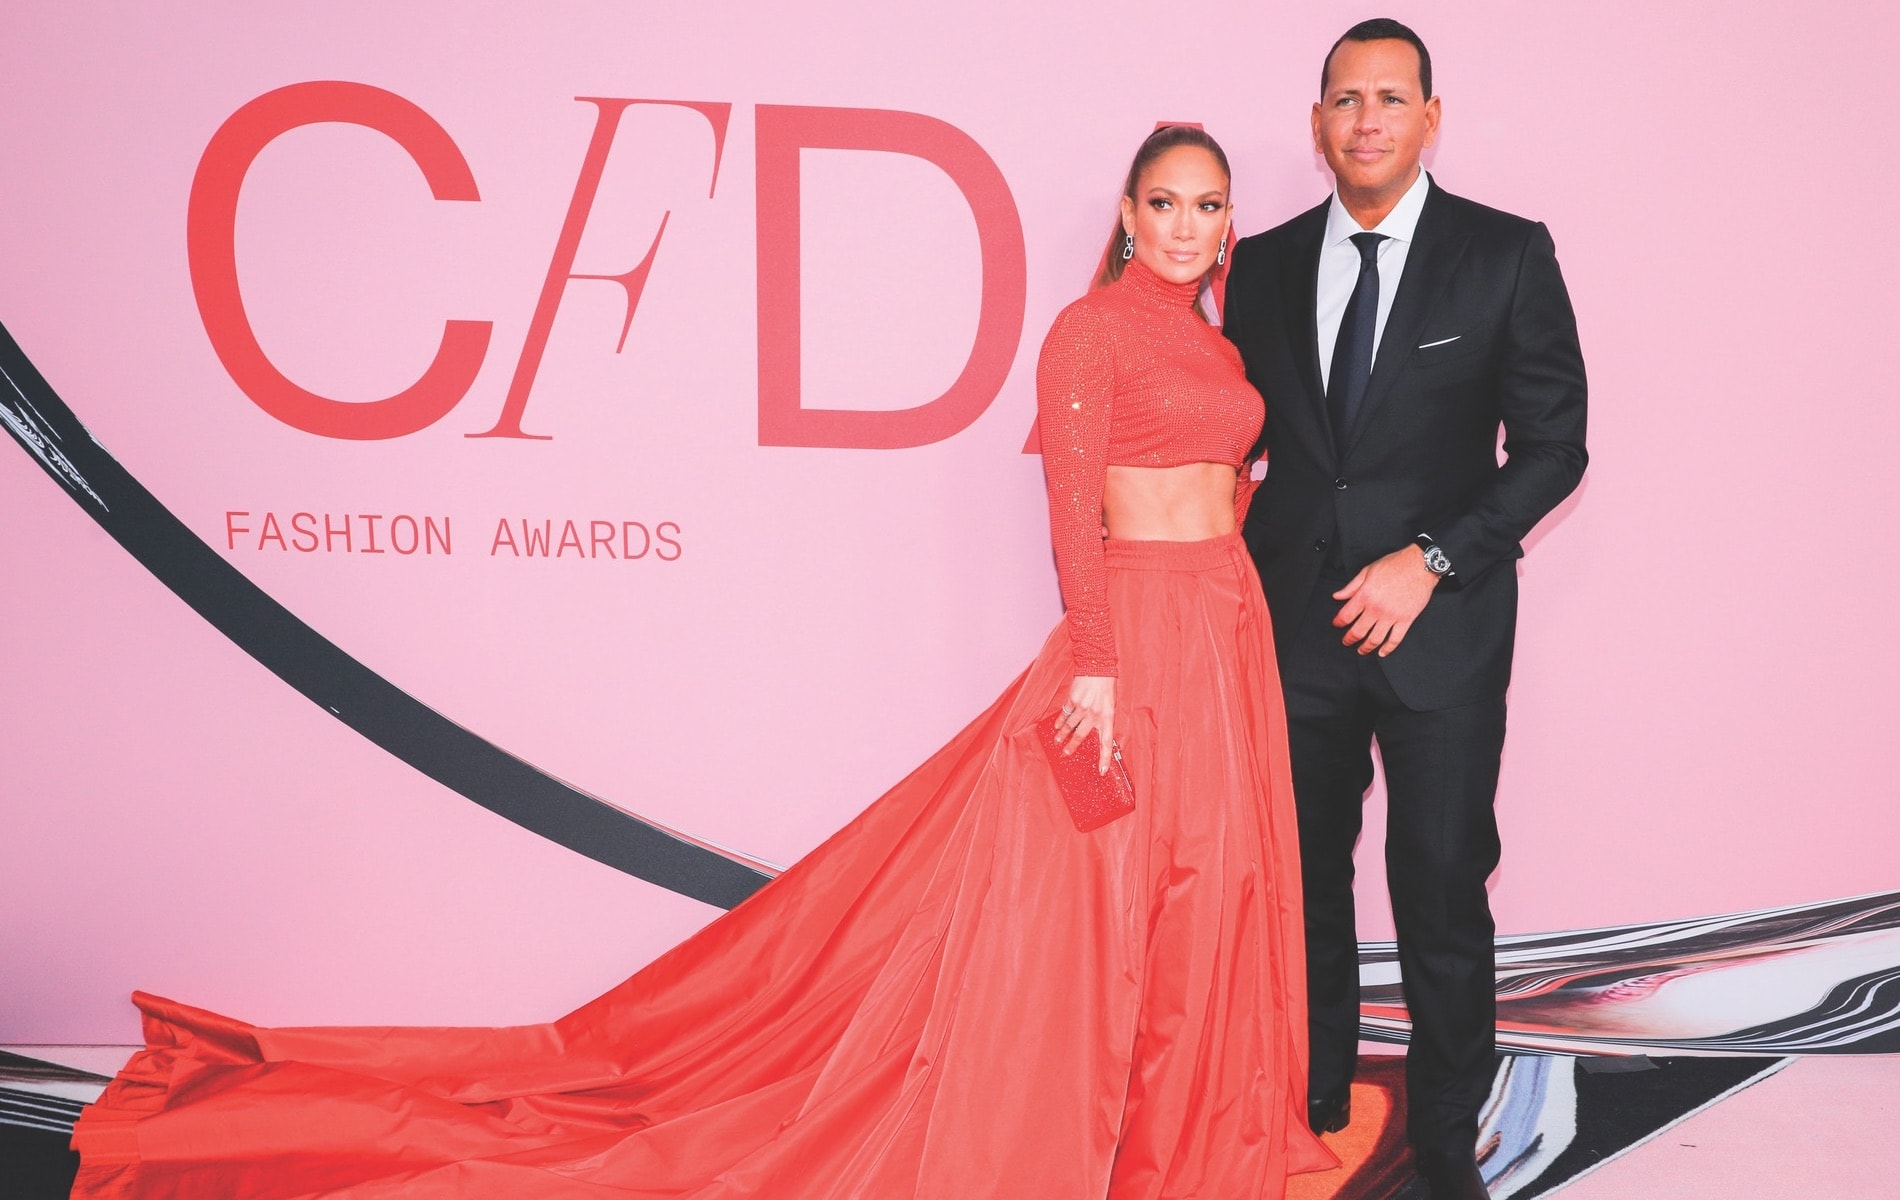 CFDA, CFDA Awards, 2019 CFDA Awards, Council of Fashion Designers of America, Brooklyn Museum, New York City, NYC, New York, Jennifer Lopez, Alex Rodriguez